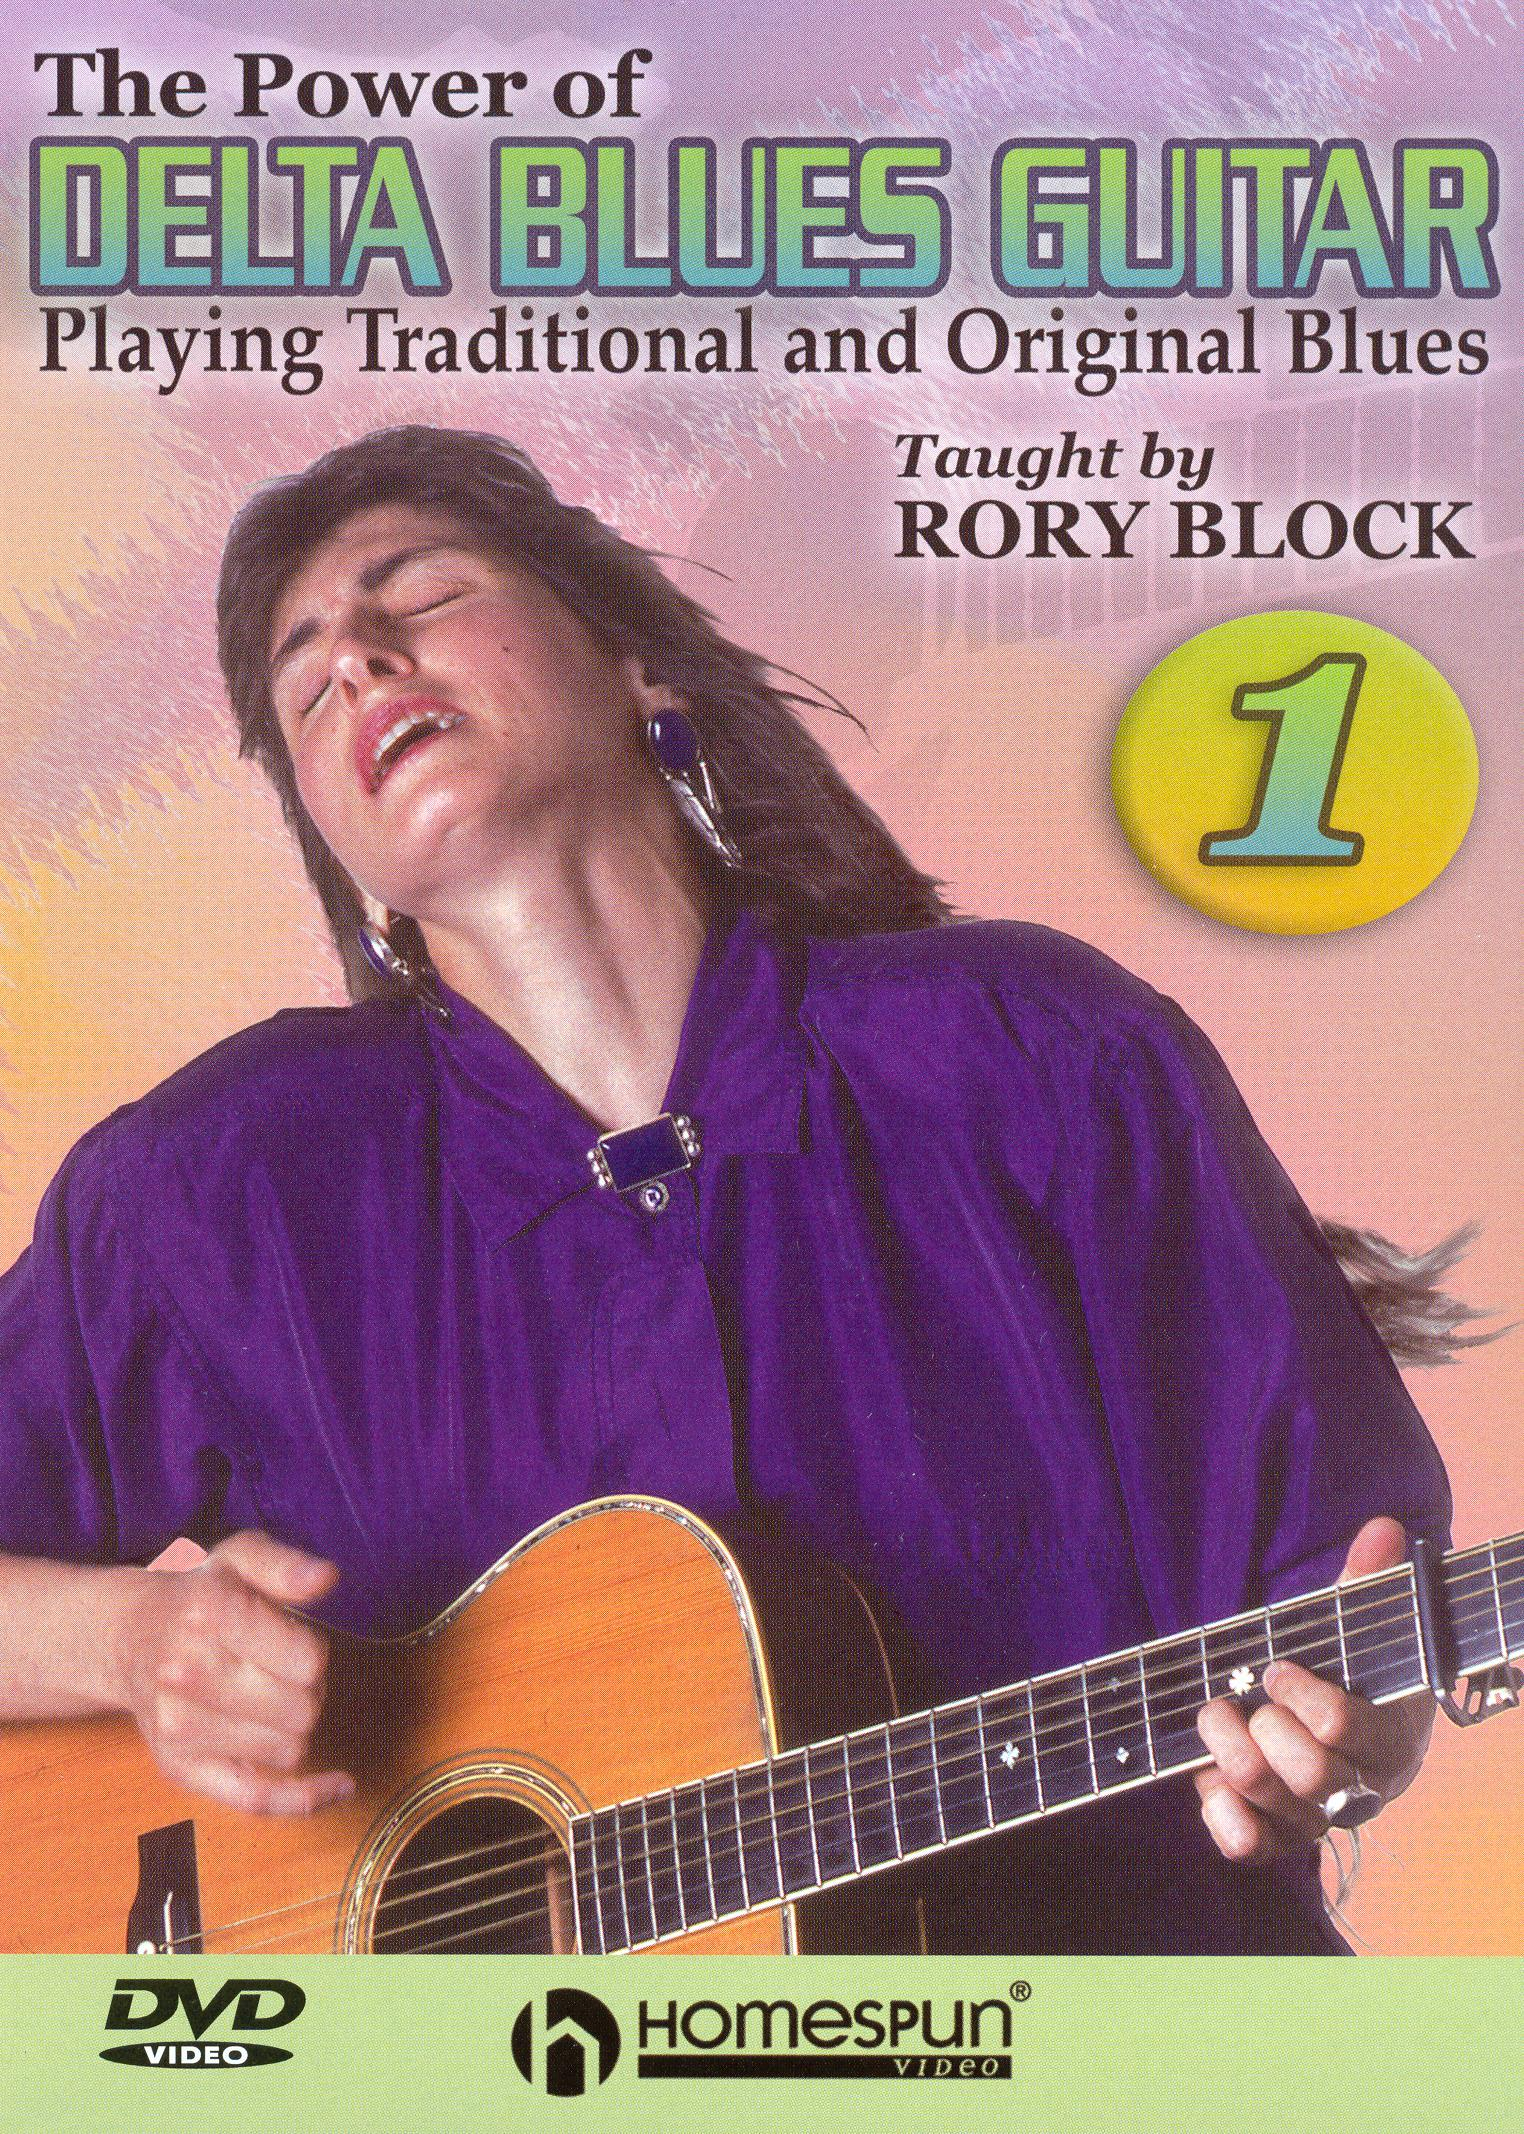 The Power of Delta Blues Guitar, Vol. 1